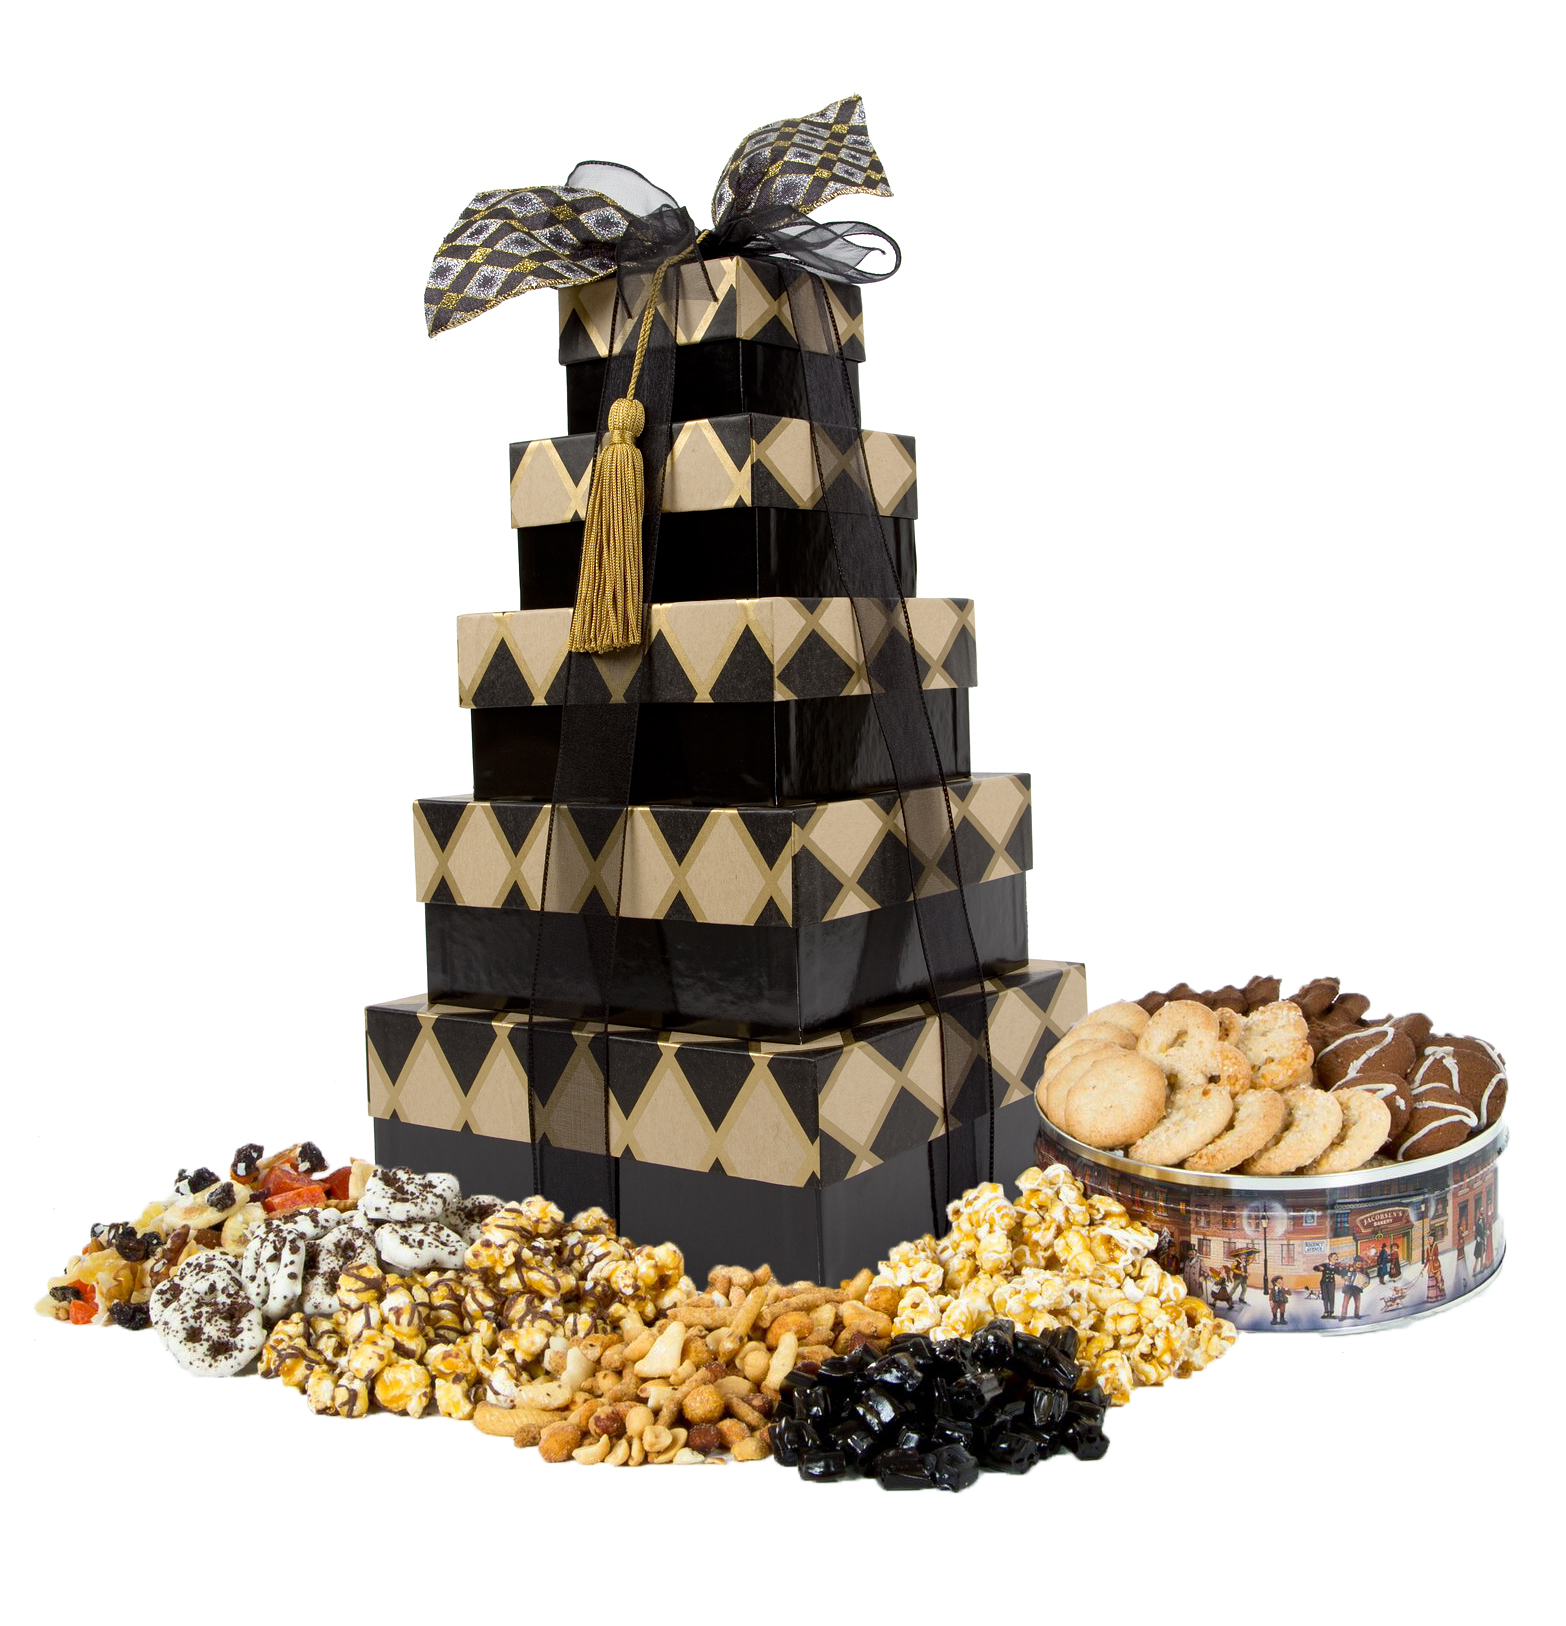 black-diamond-5-tier-foods.jpg